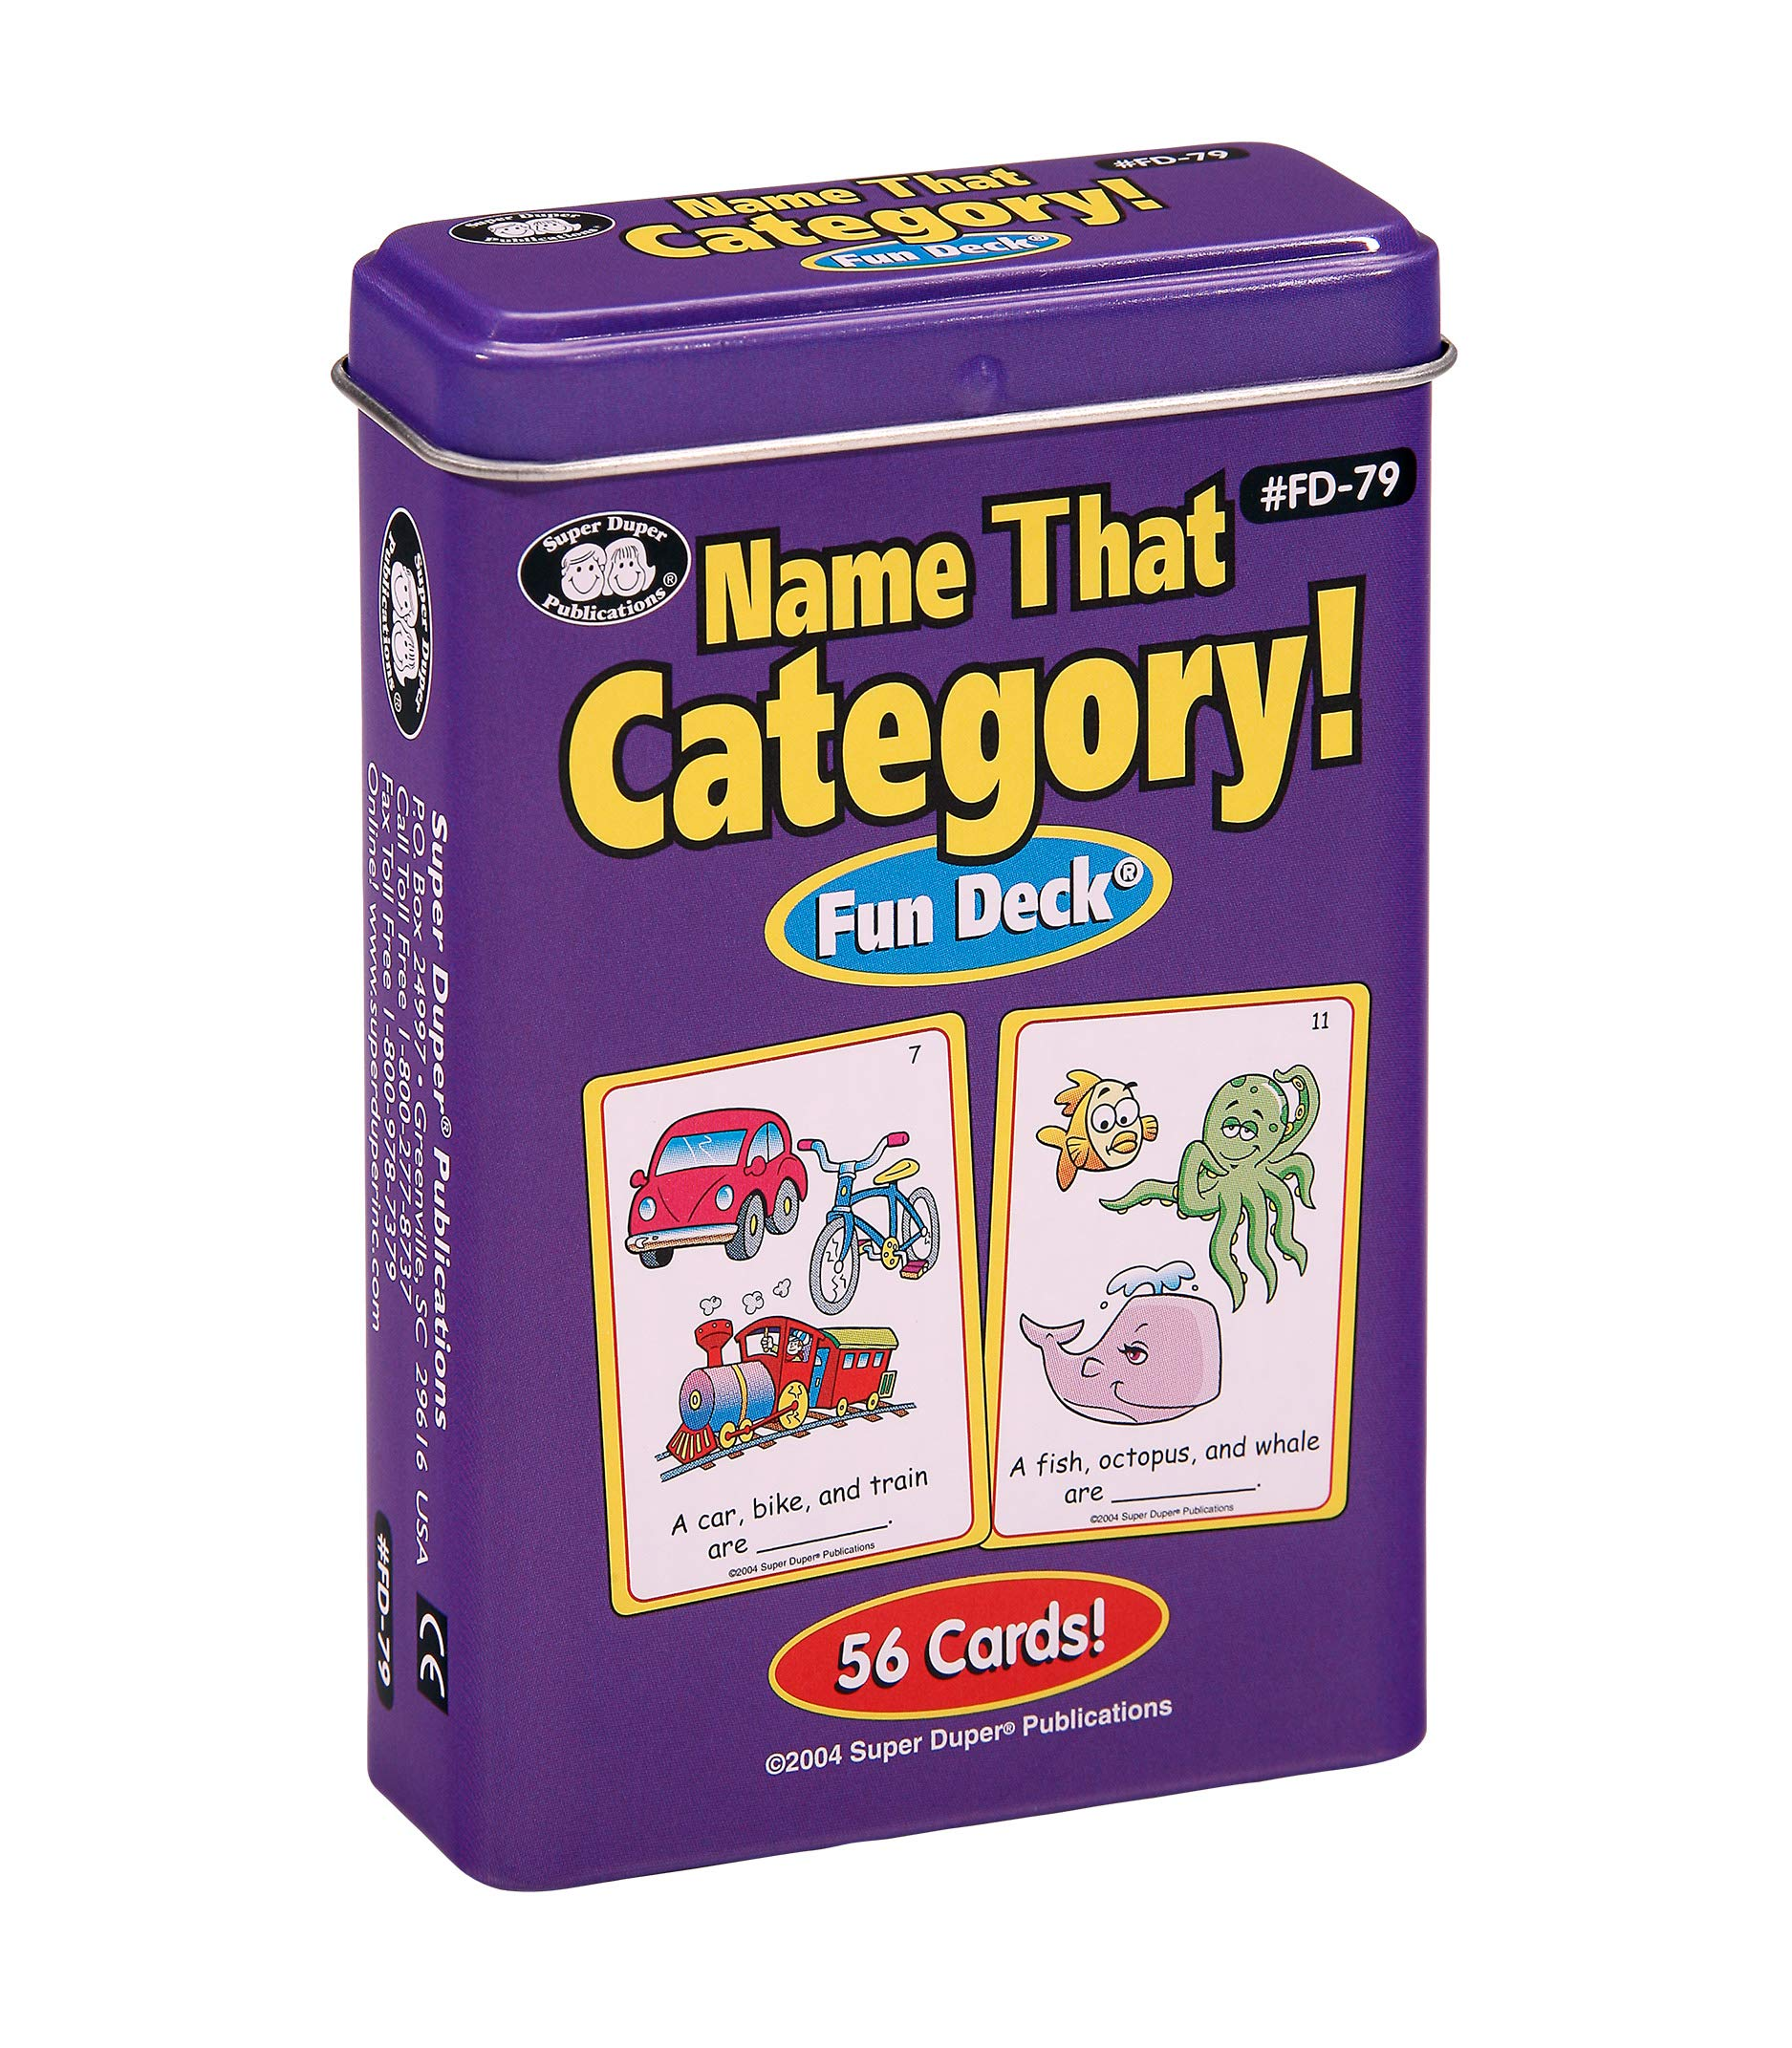 Super Duper Publications   Name That Category Fun Deck   Describing, Categorizing, and Organizational Skills Flash Cards   Educational Learning Materials for Children